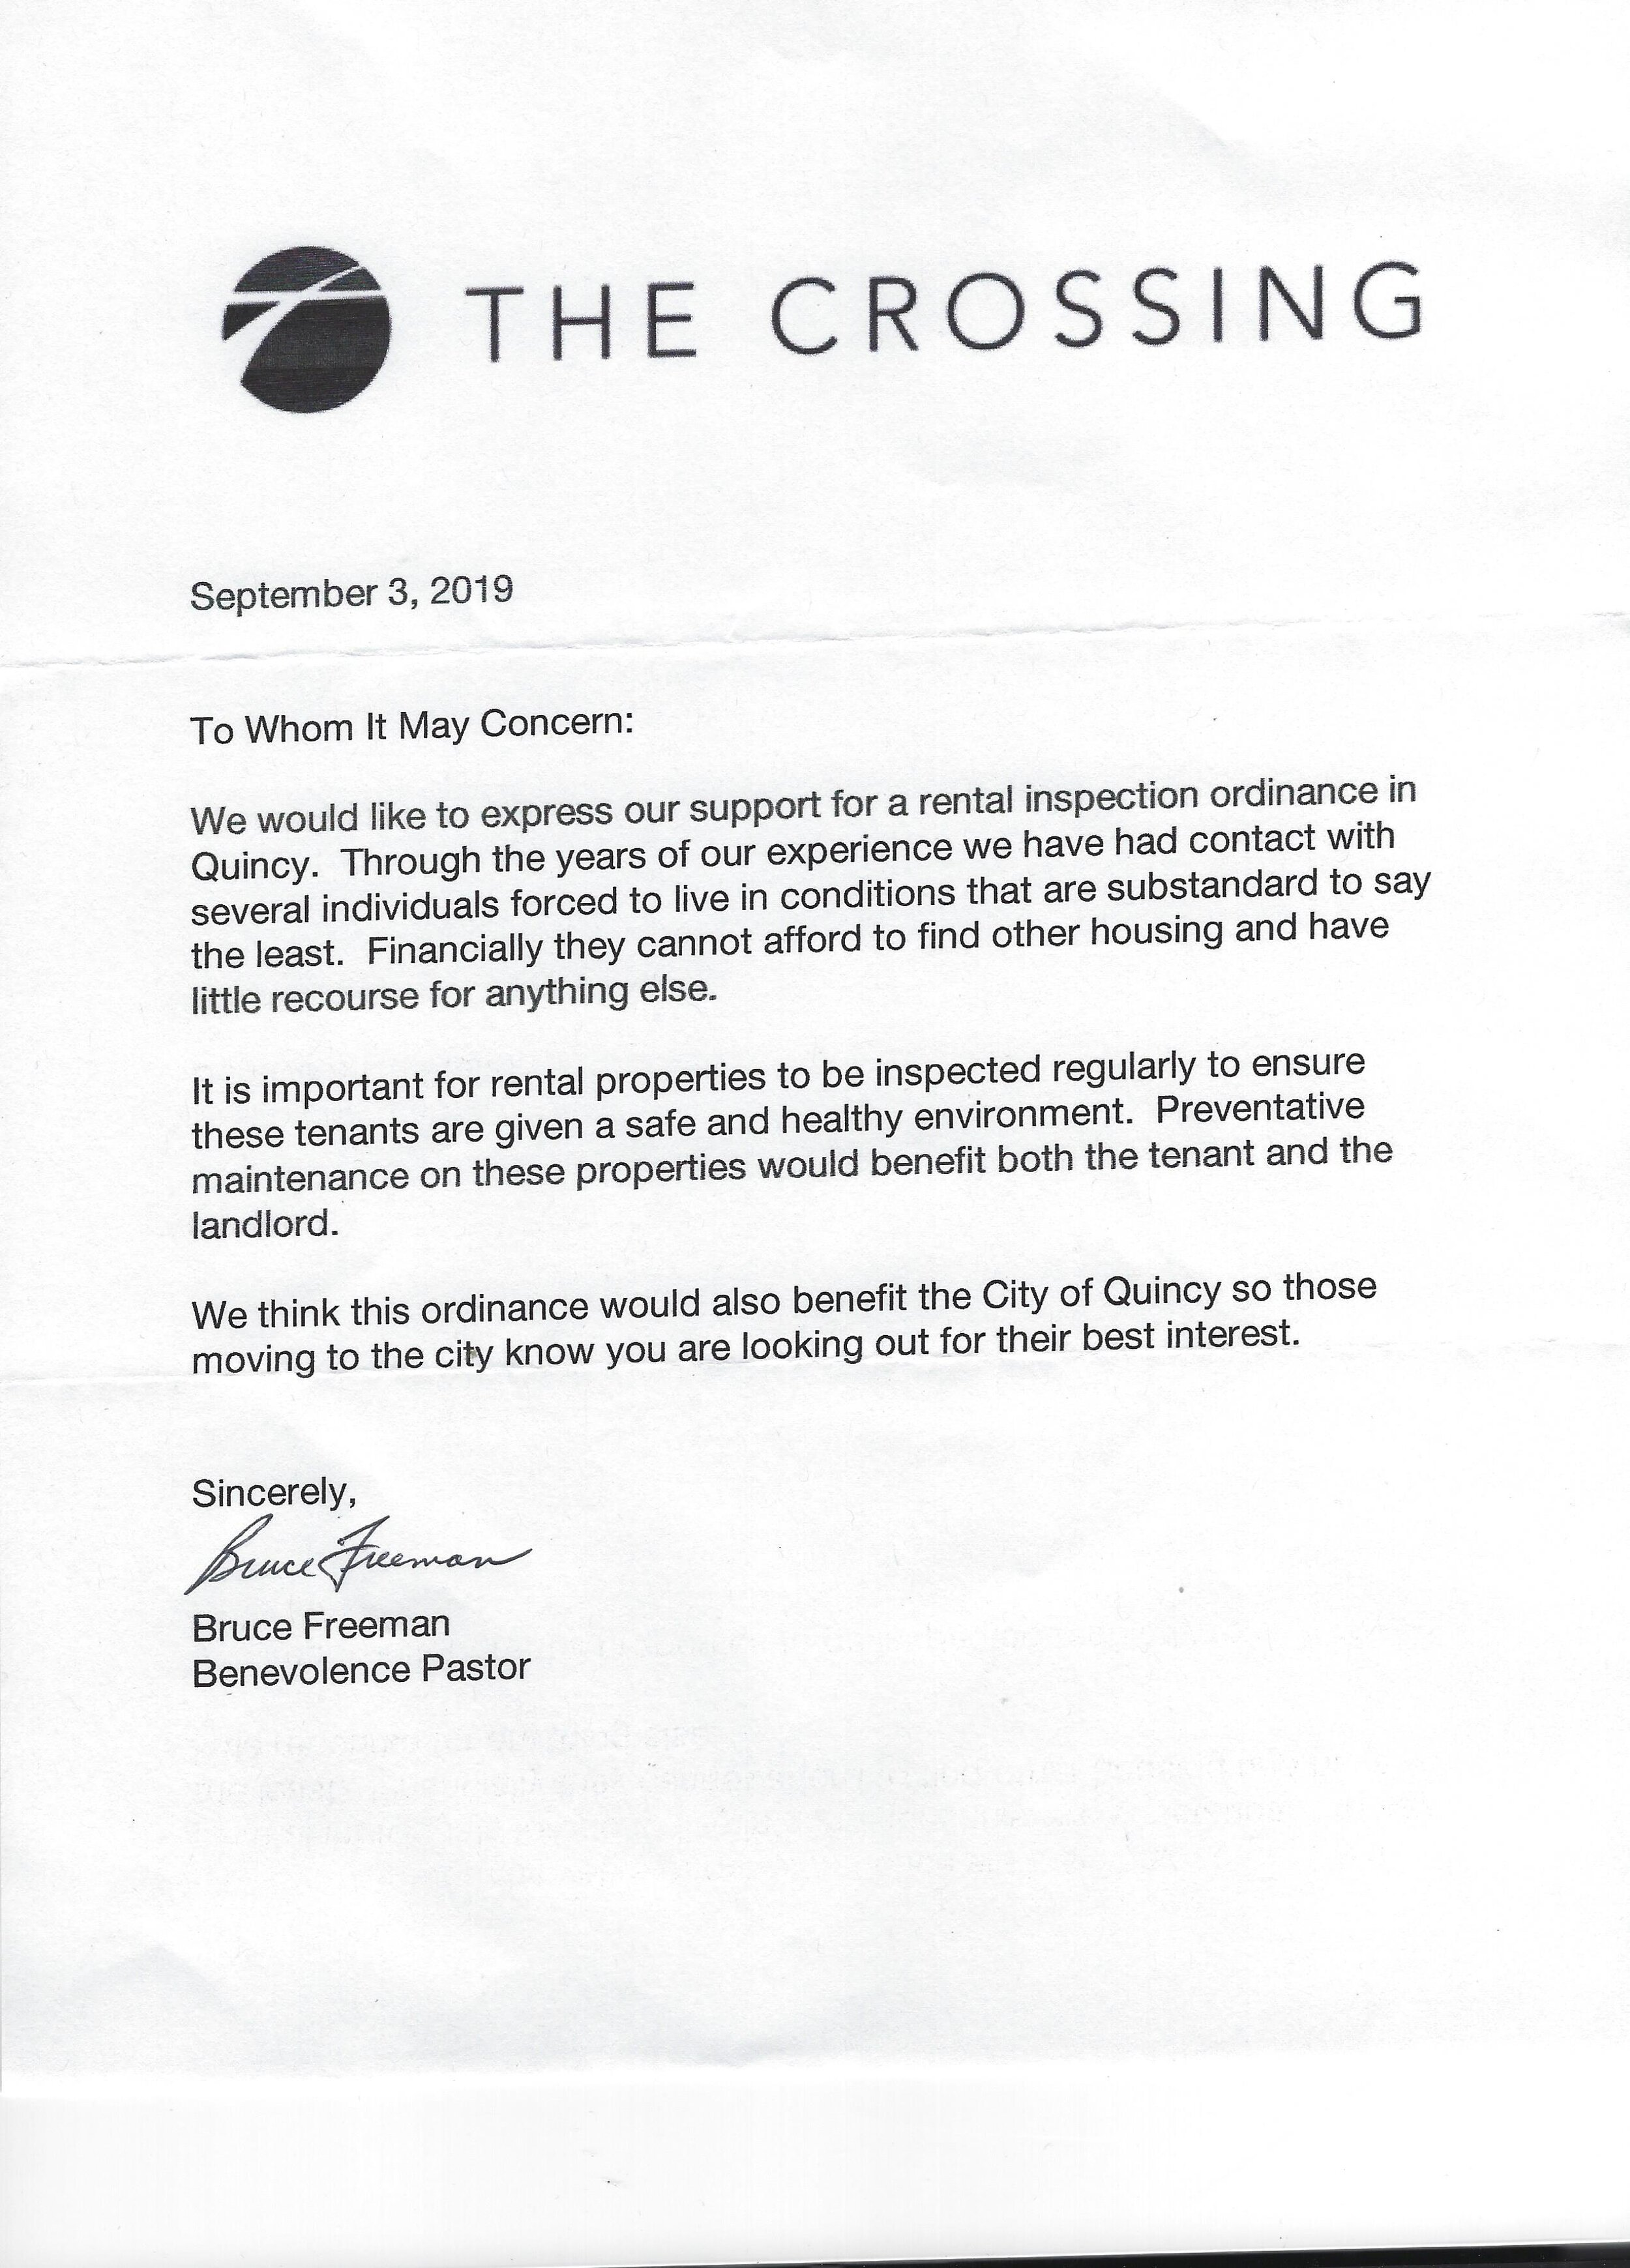 QIPP The Crossing Letter of Support.jpeg